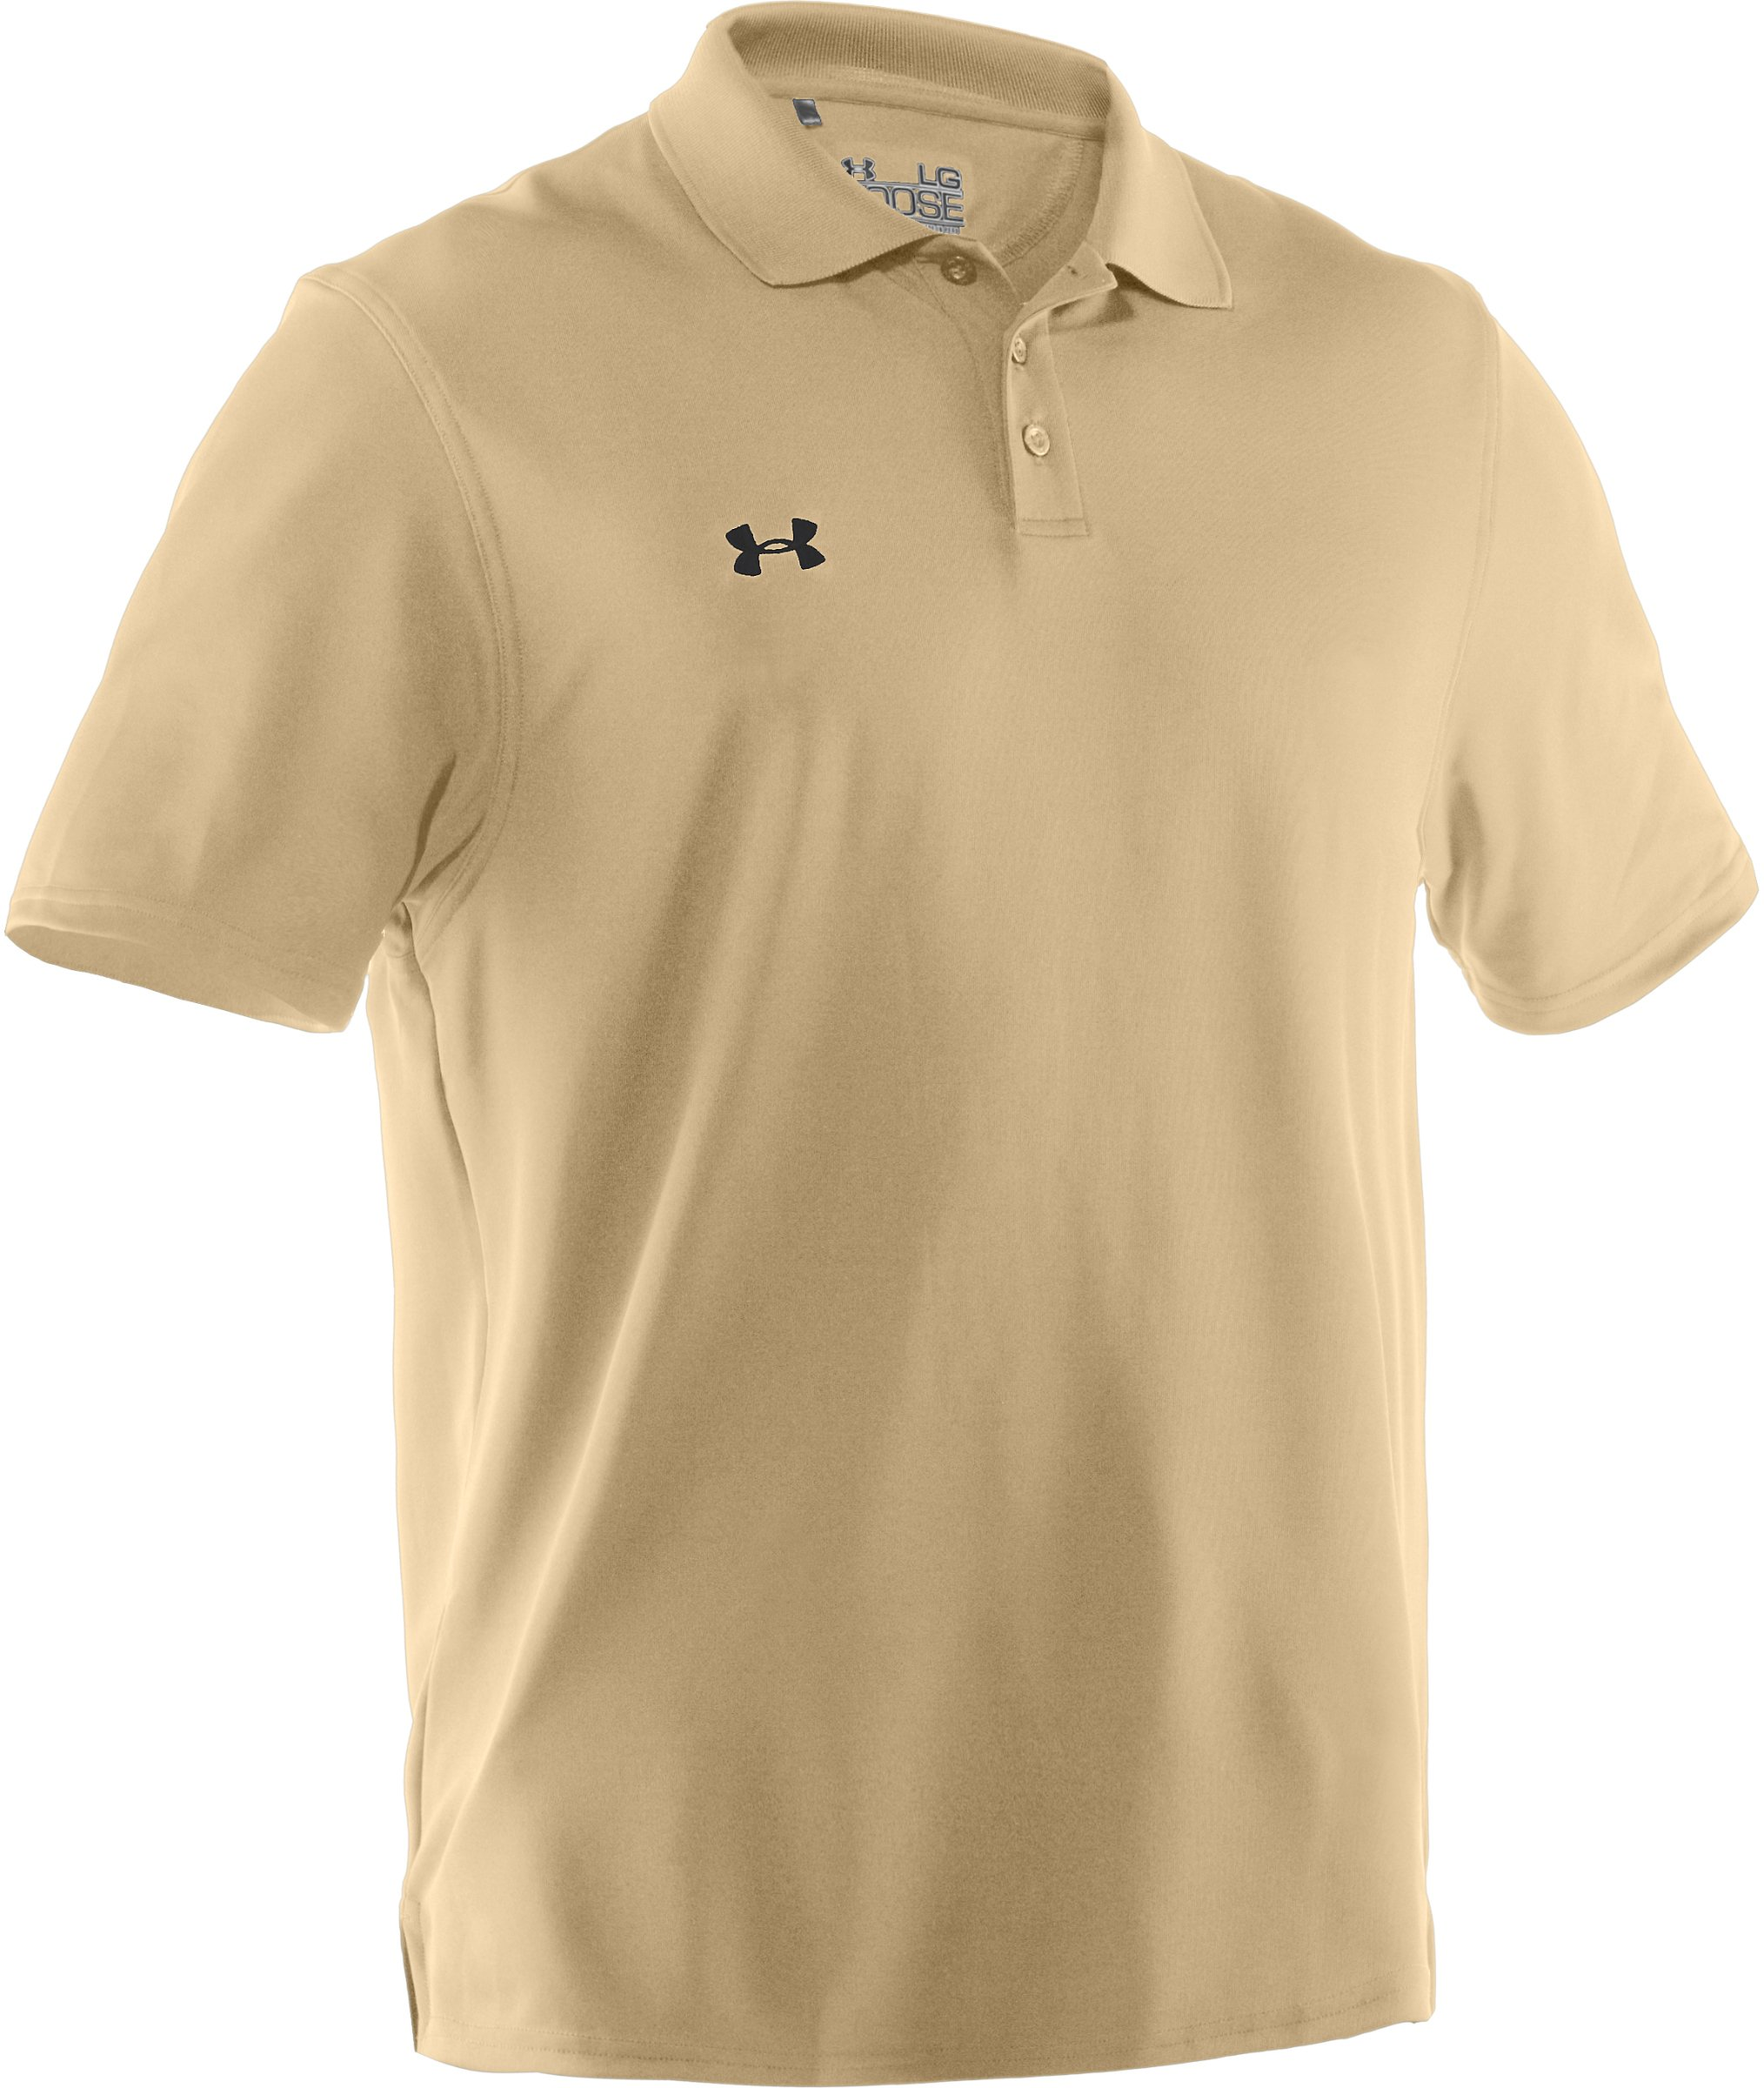 Under Armour Team Performance Polo Vegas Gold/Black Small